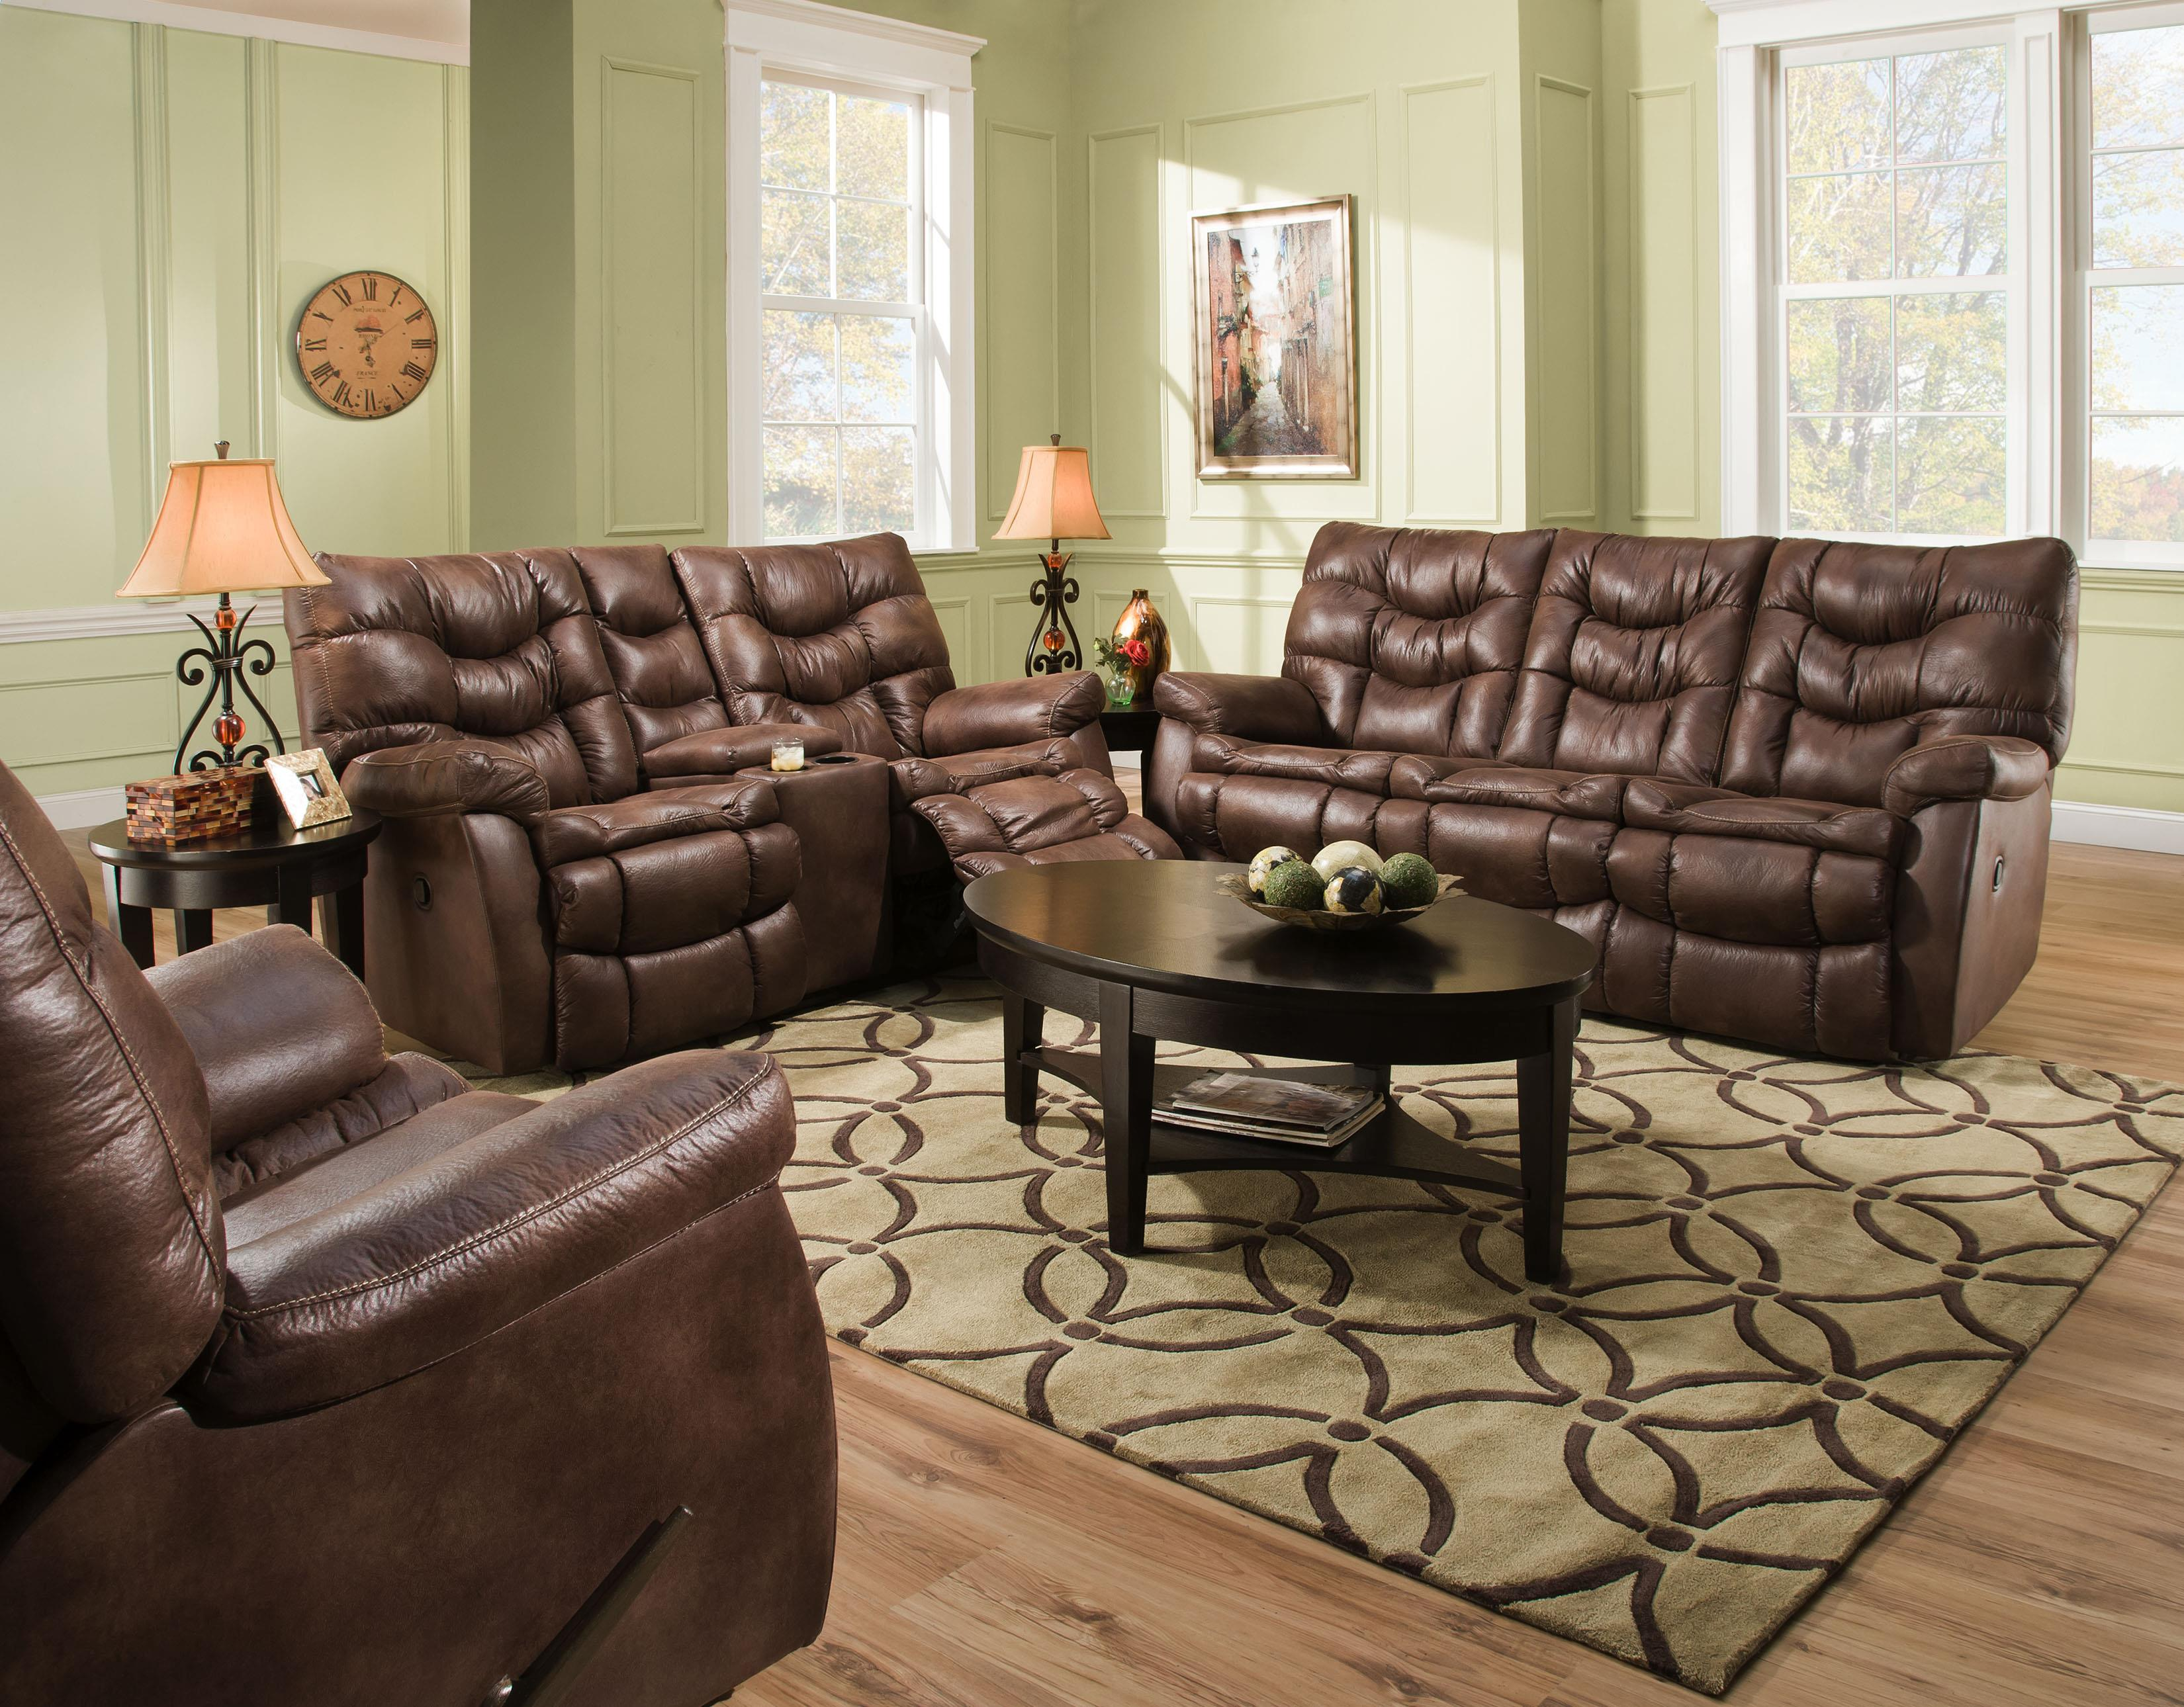 HomeStretch 130 Reclining Living Room Group - Item Number: 130 Living Room Group